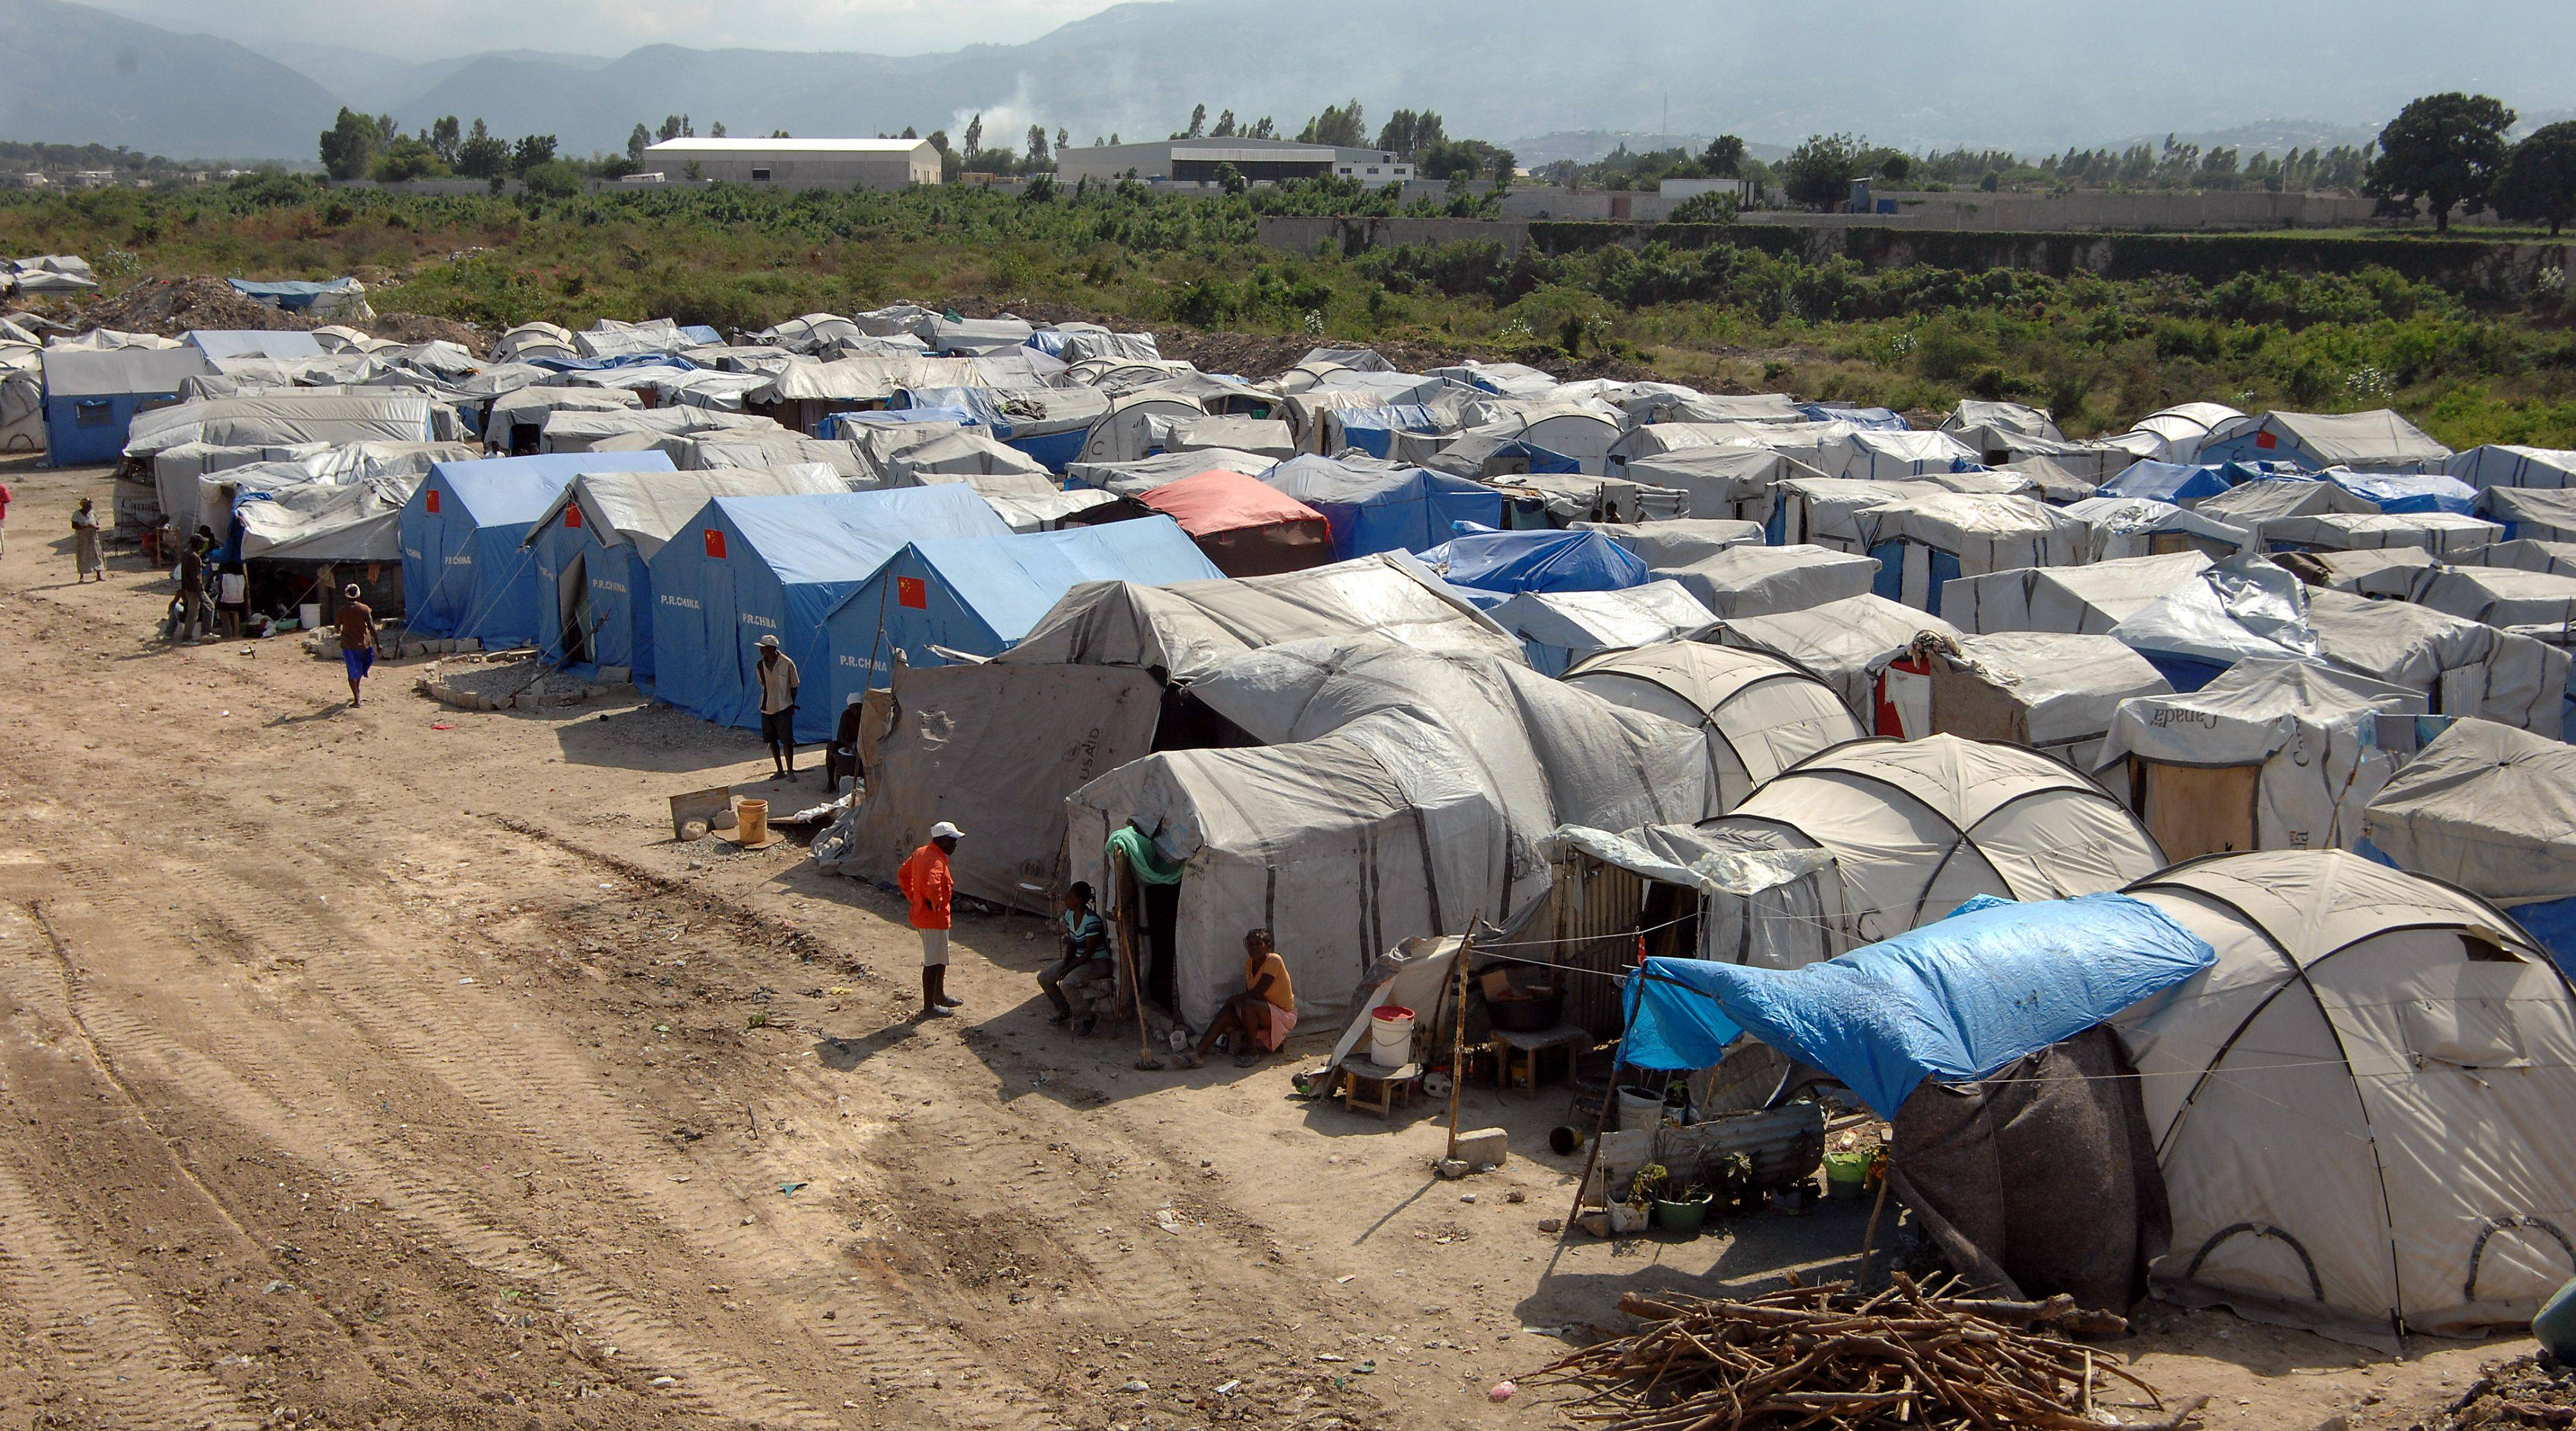 Tent cities spring up just about everywhere in Port-au-Prince one year after a catastrophic earthquake shook Haiti.